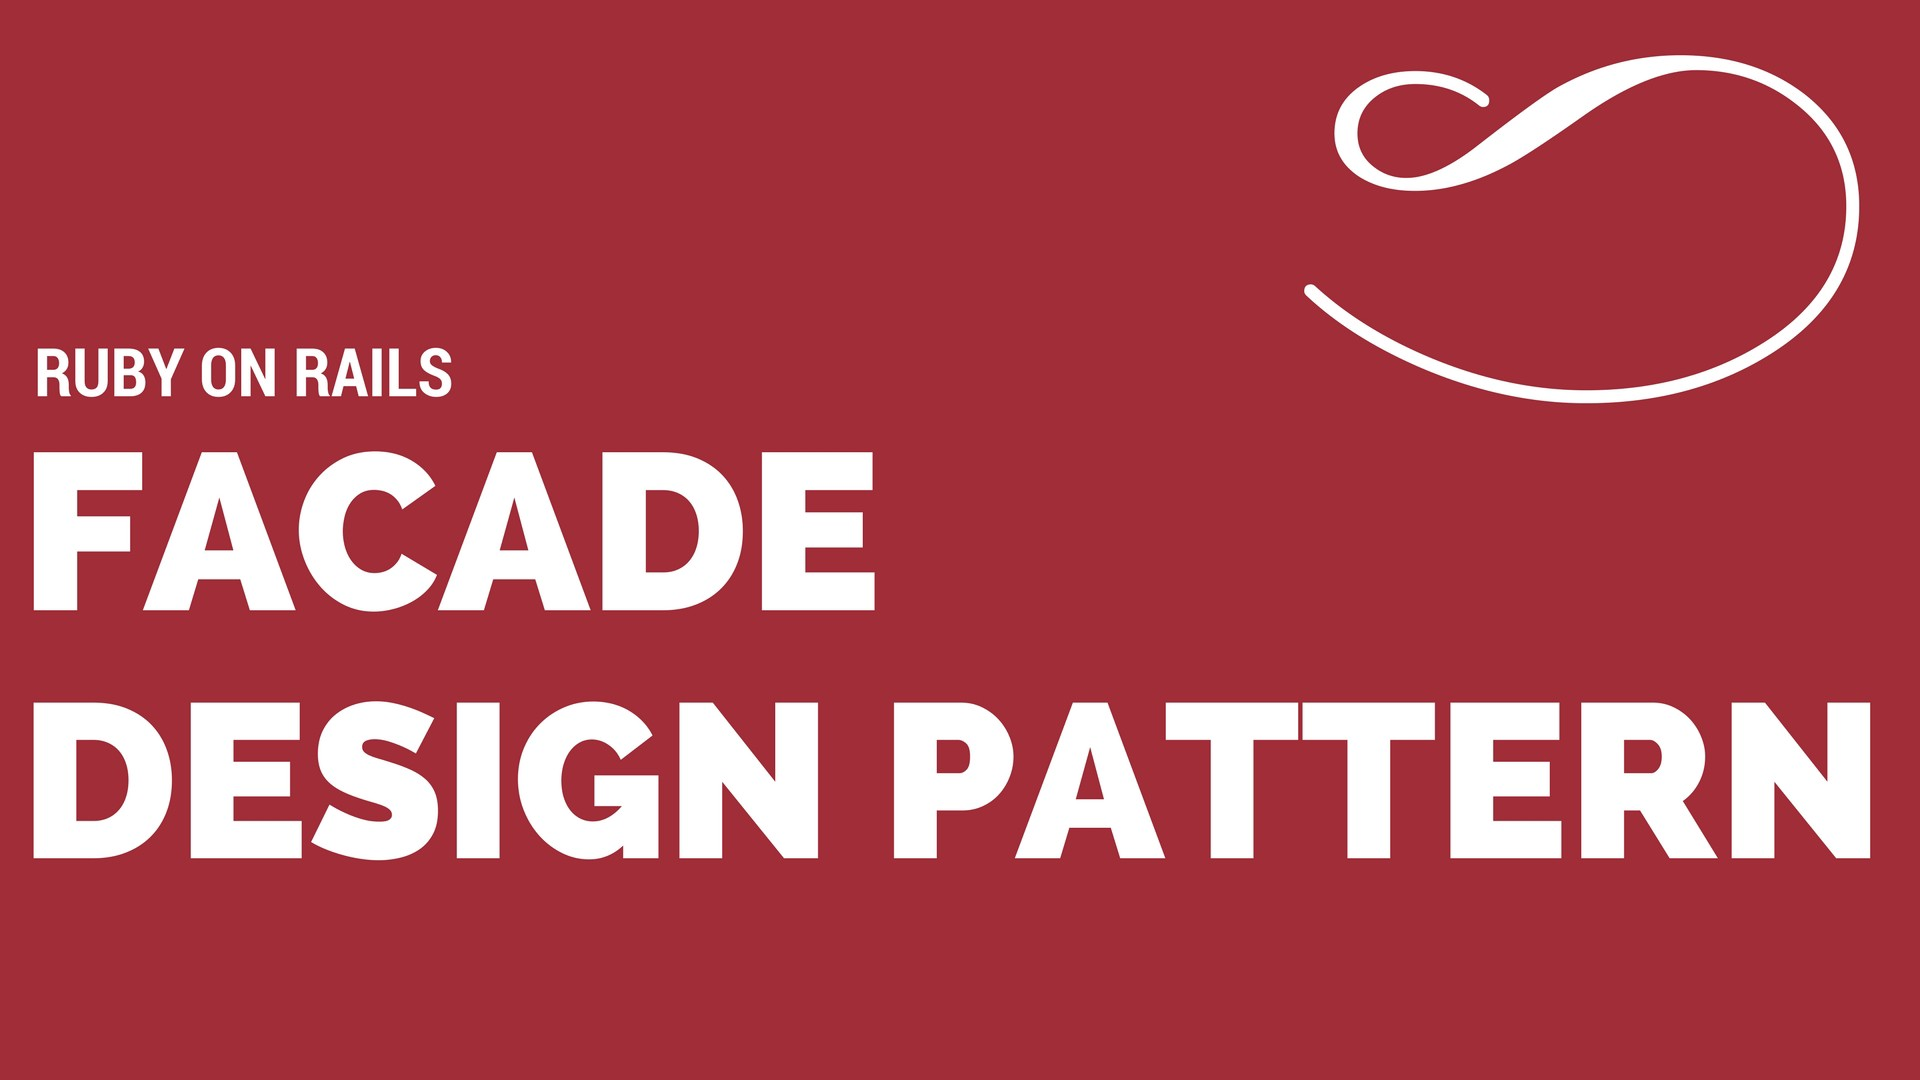 Ruby Design Patterns Simple Inspiration